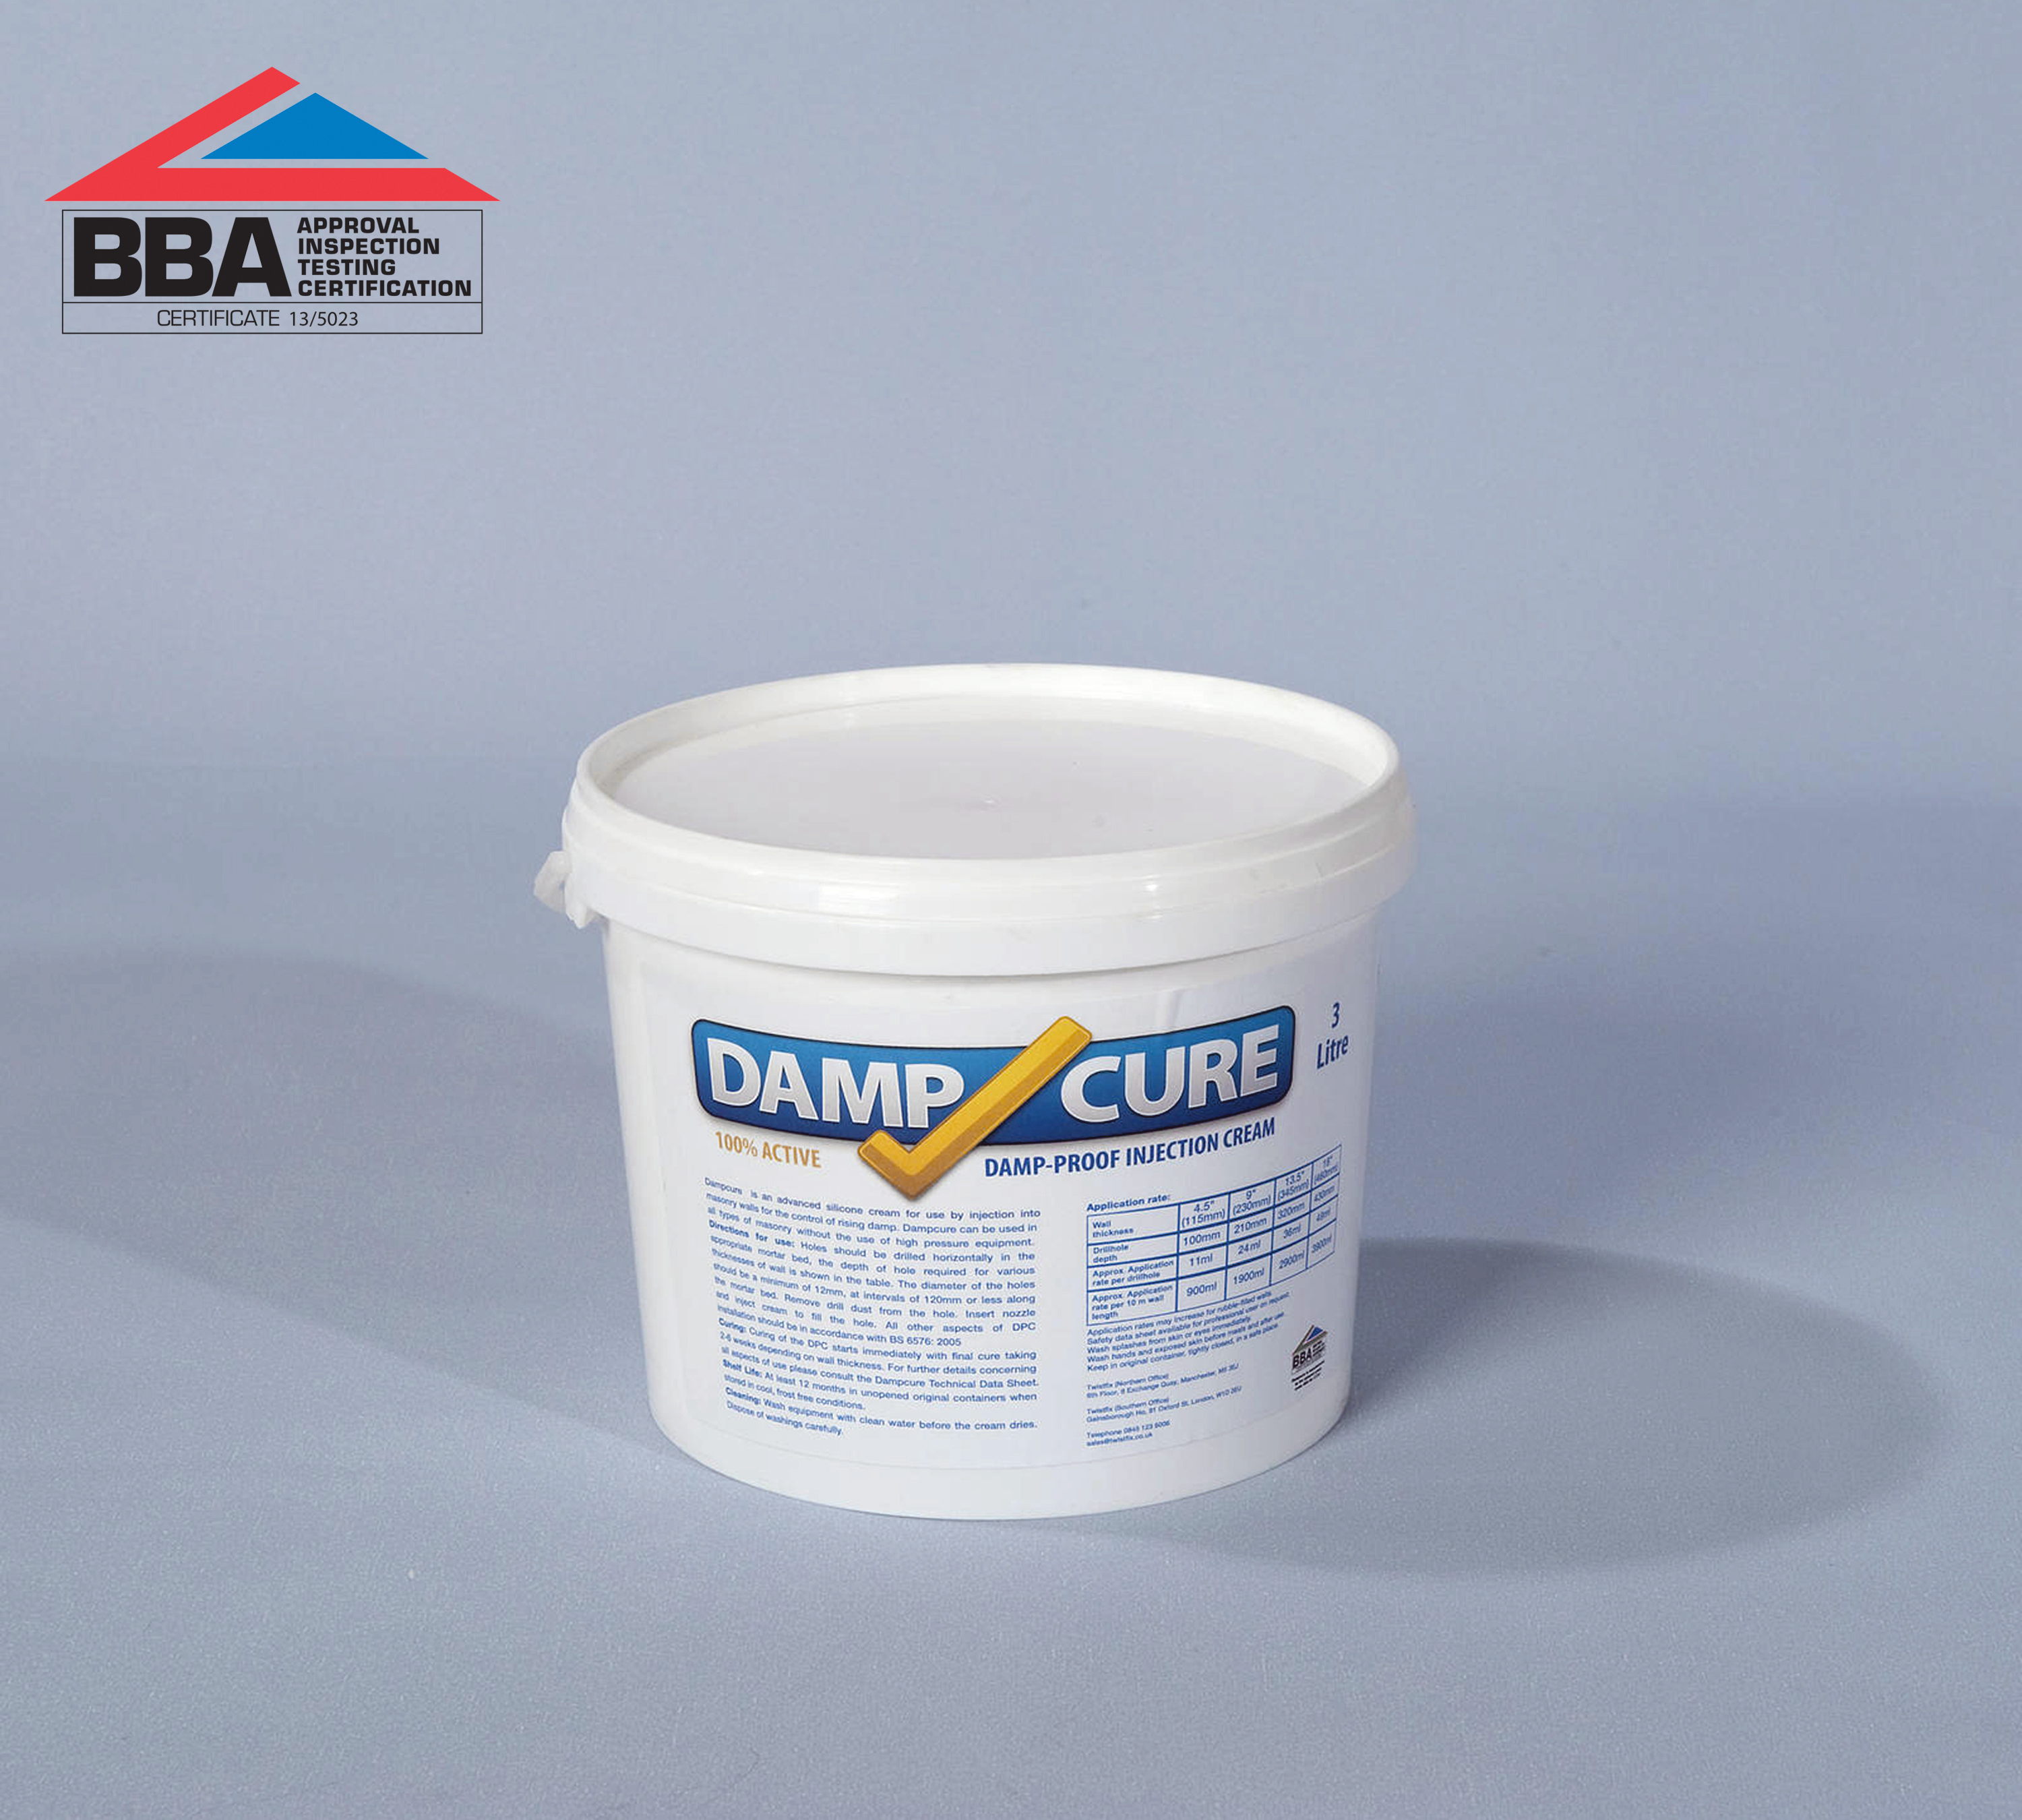 Rising Damp Treatment - Dampcure 3000 Cream